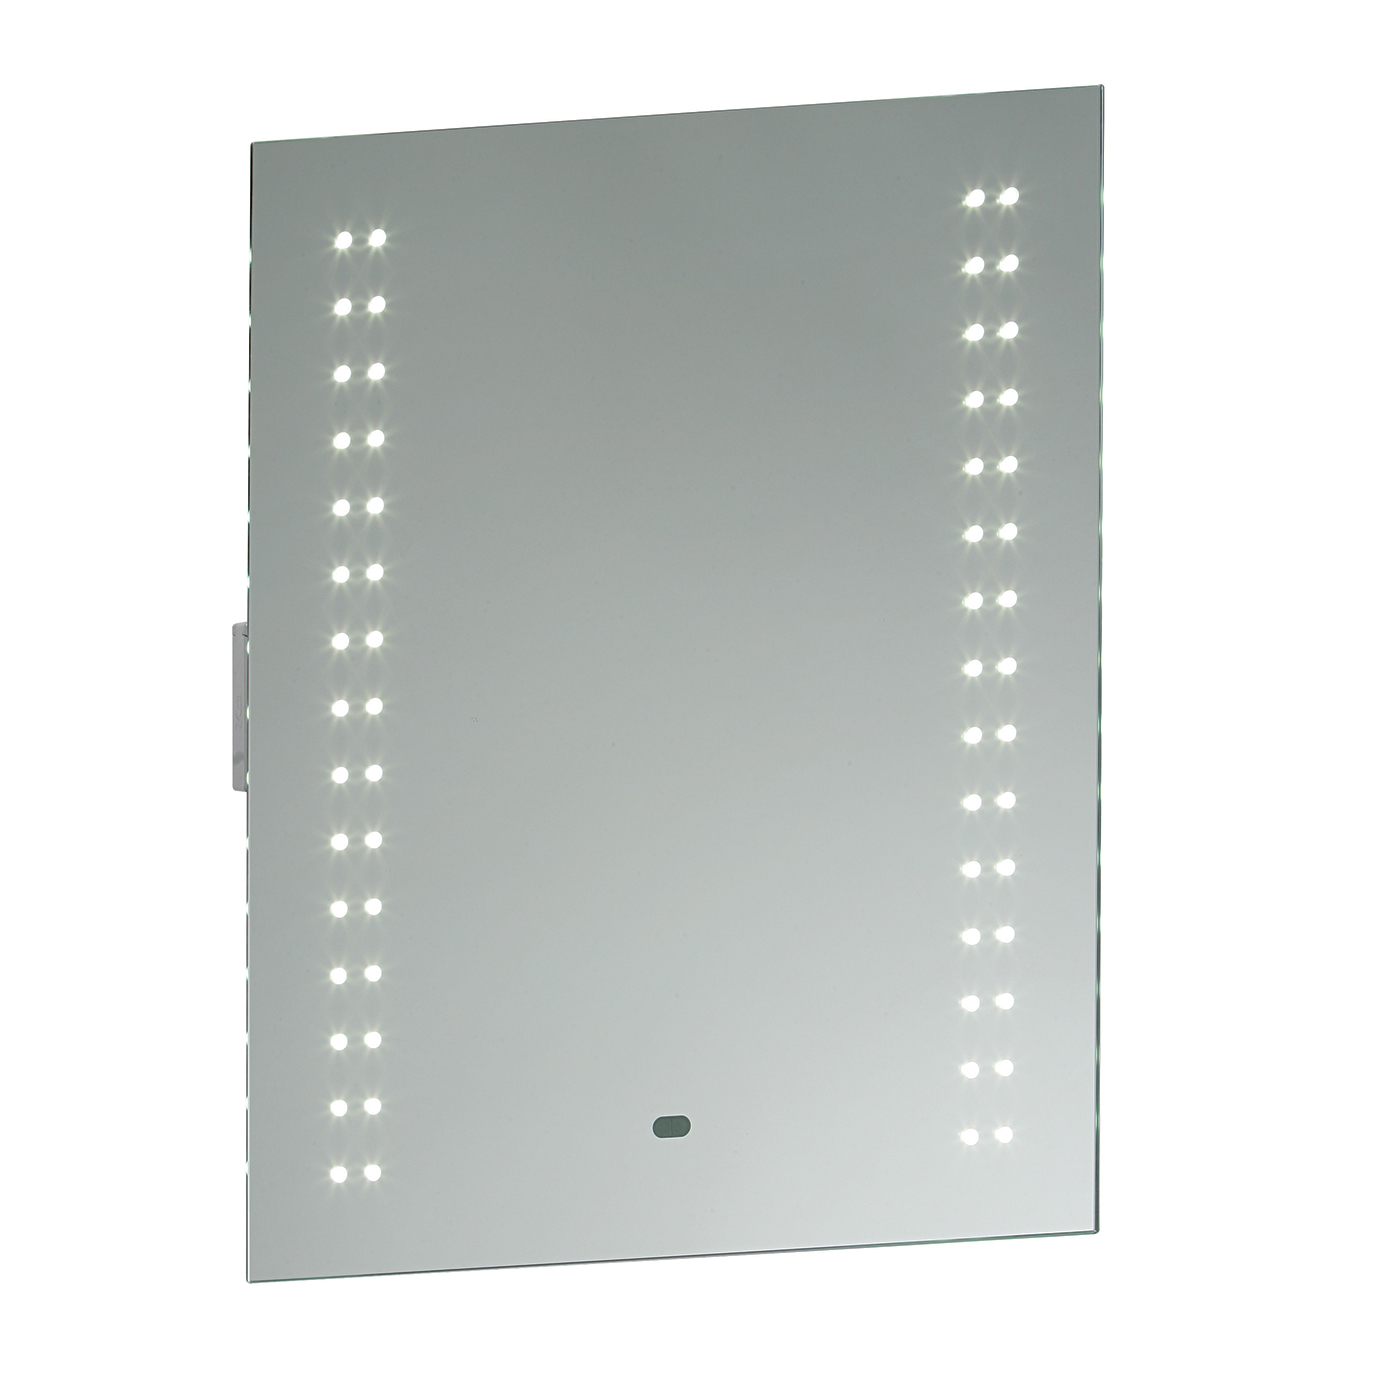 Endon Perle LED shaver bathroom mirror IP44 5W sensor H: 600mm W: 500mm